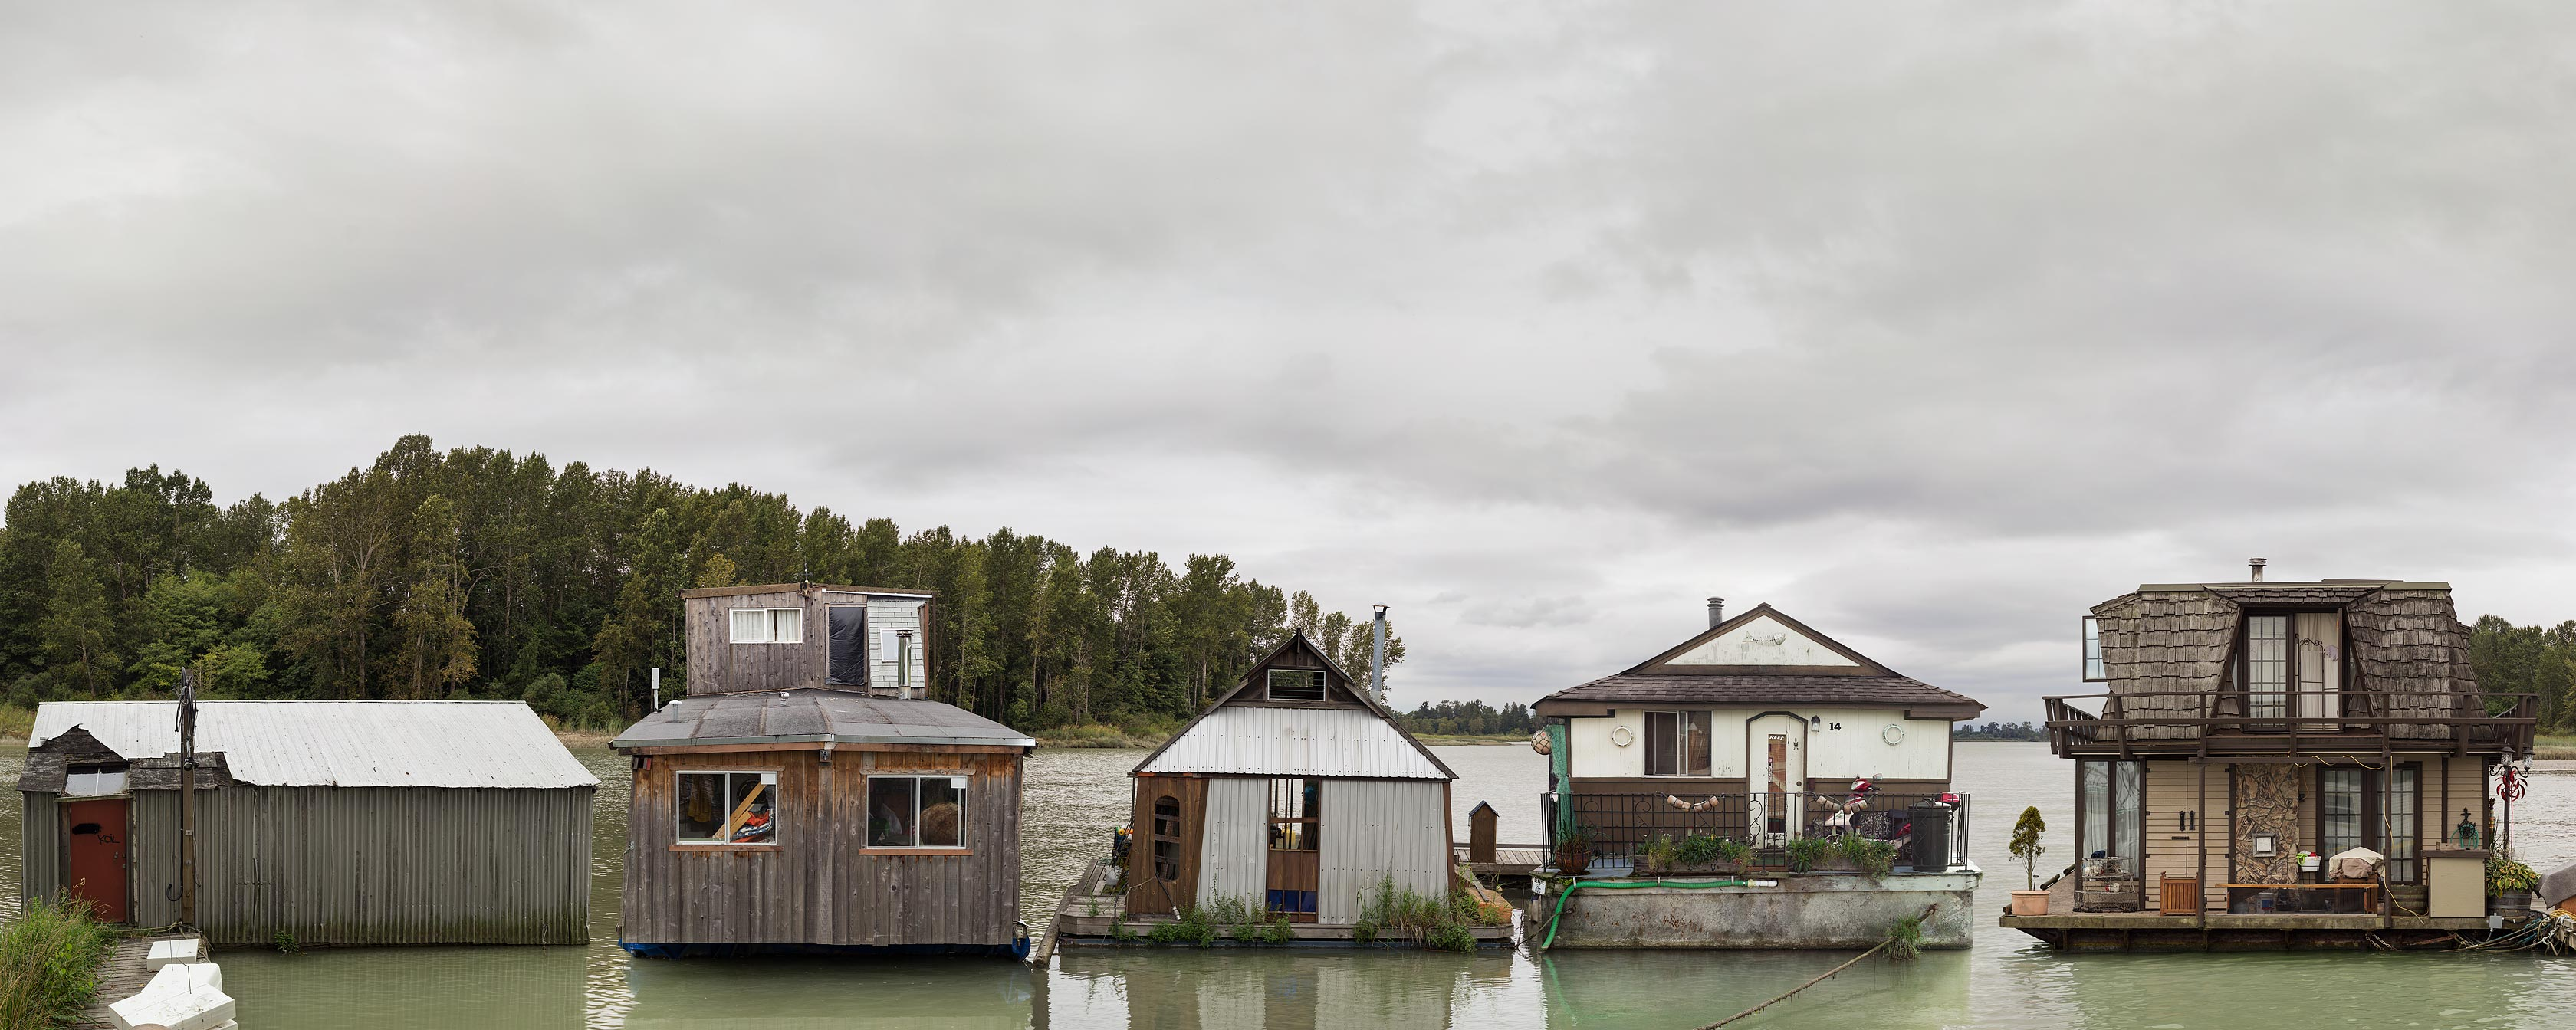 Floating Homes 30″ x 75″, archival print backmounted to aluminum, edition of 5 18″ x 45″, archival print backmounted to aluminum, edition of 7